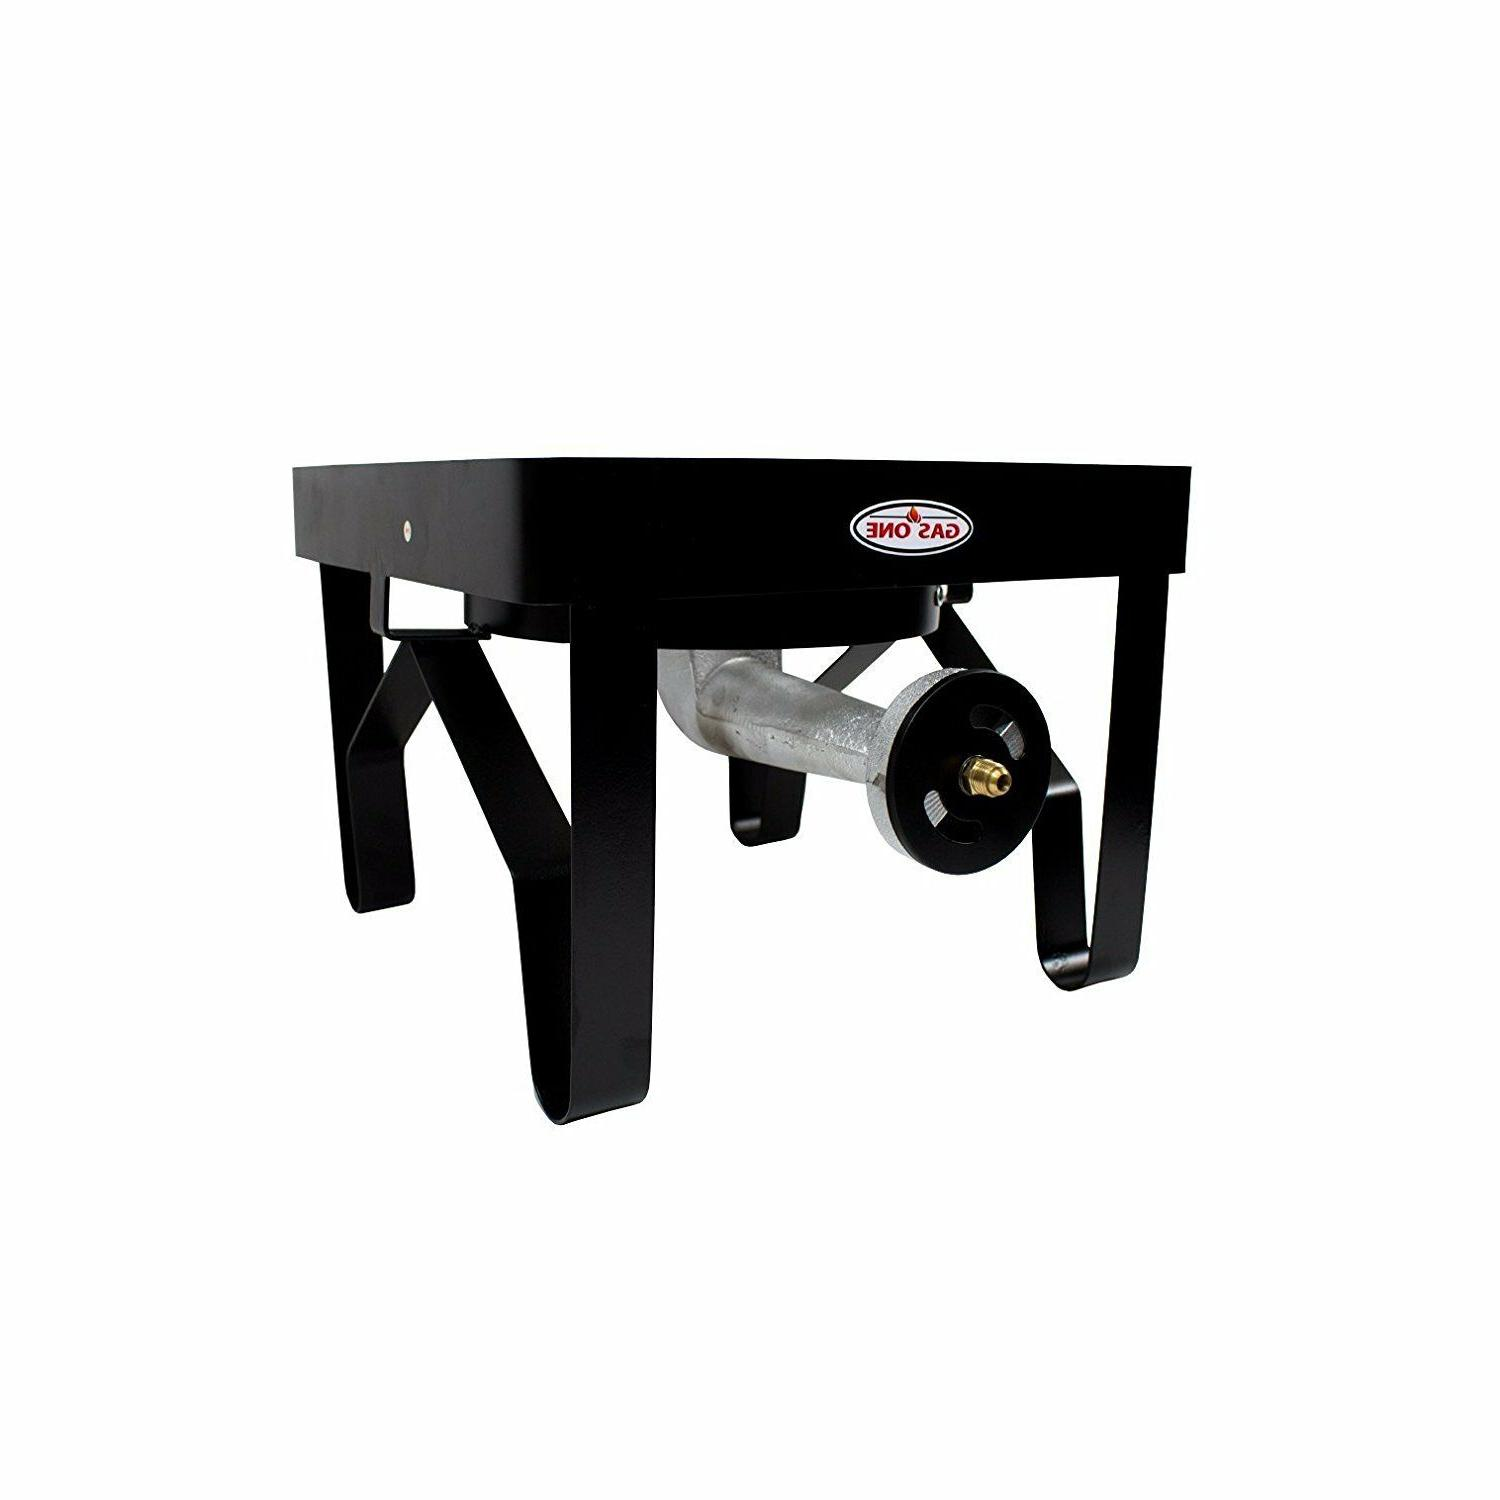 GAS ONE 200,000 Square Single Burner Outdoor Gas